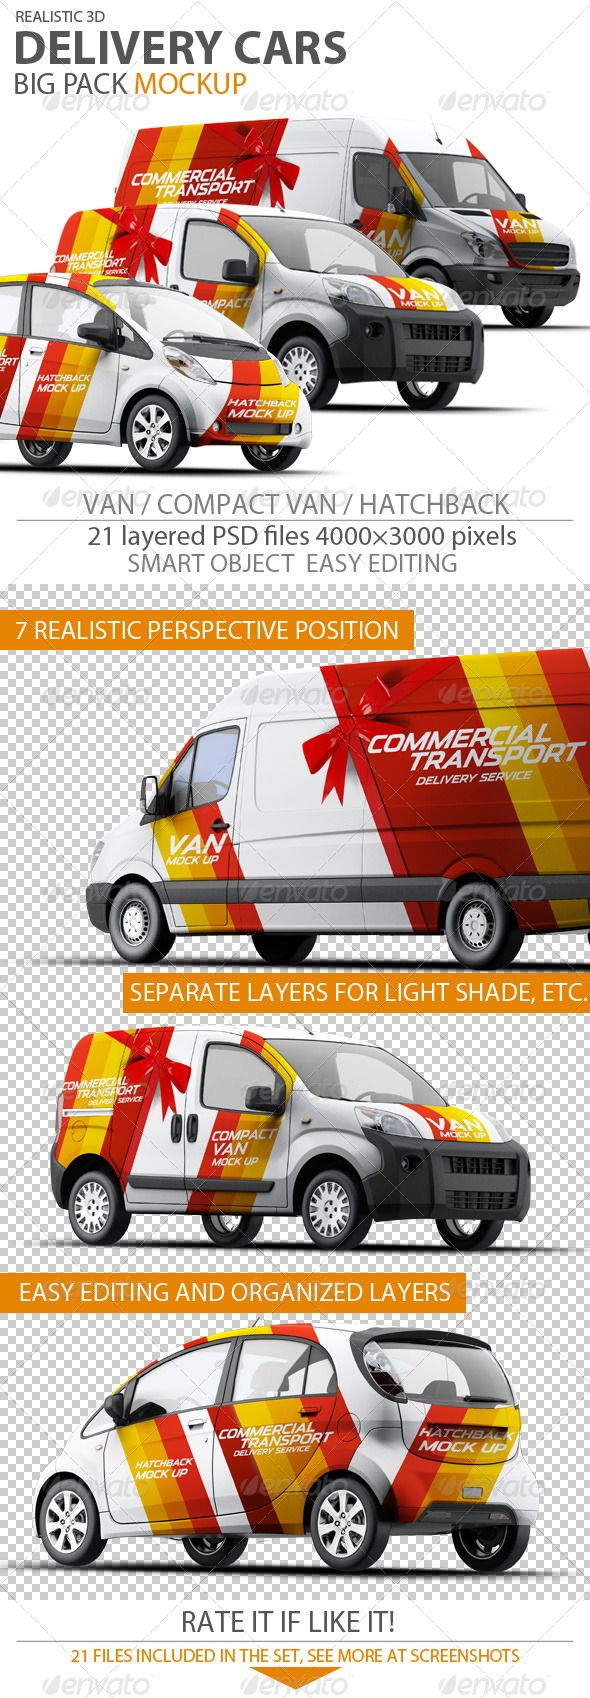 Car sticker photoshop tutorial - Cars Mock Up